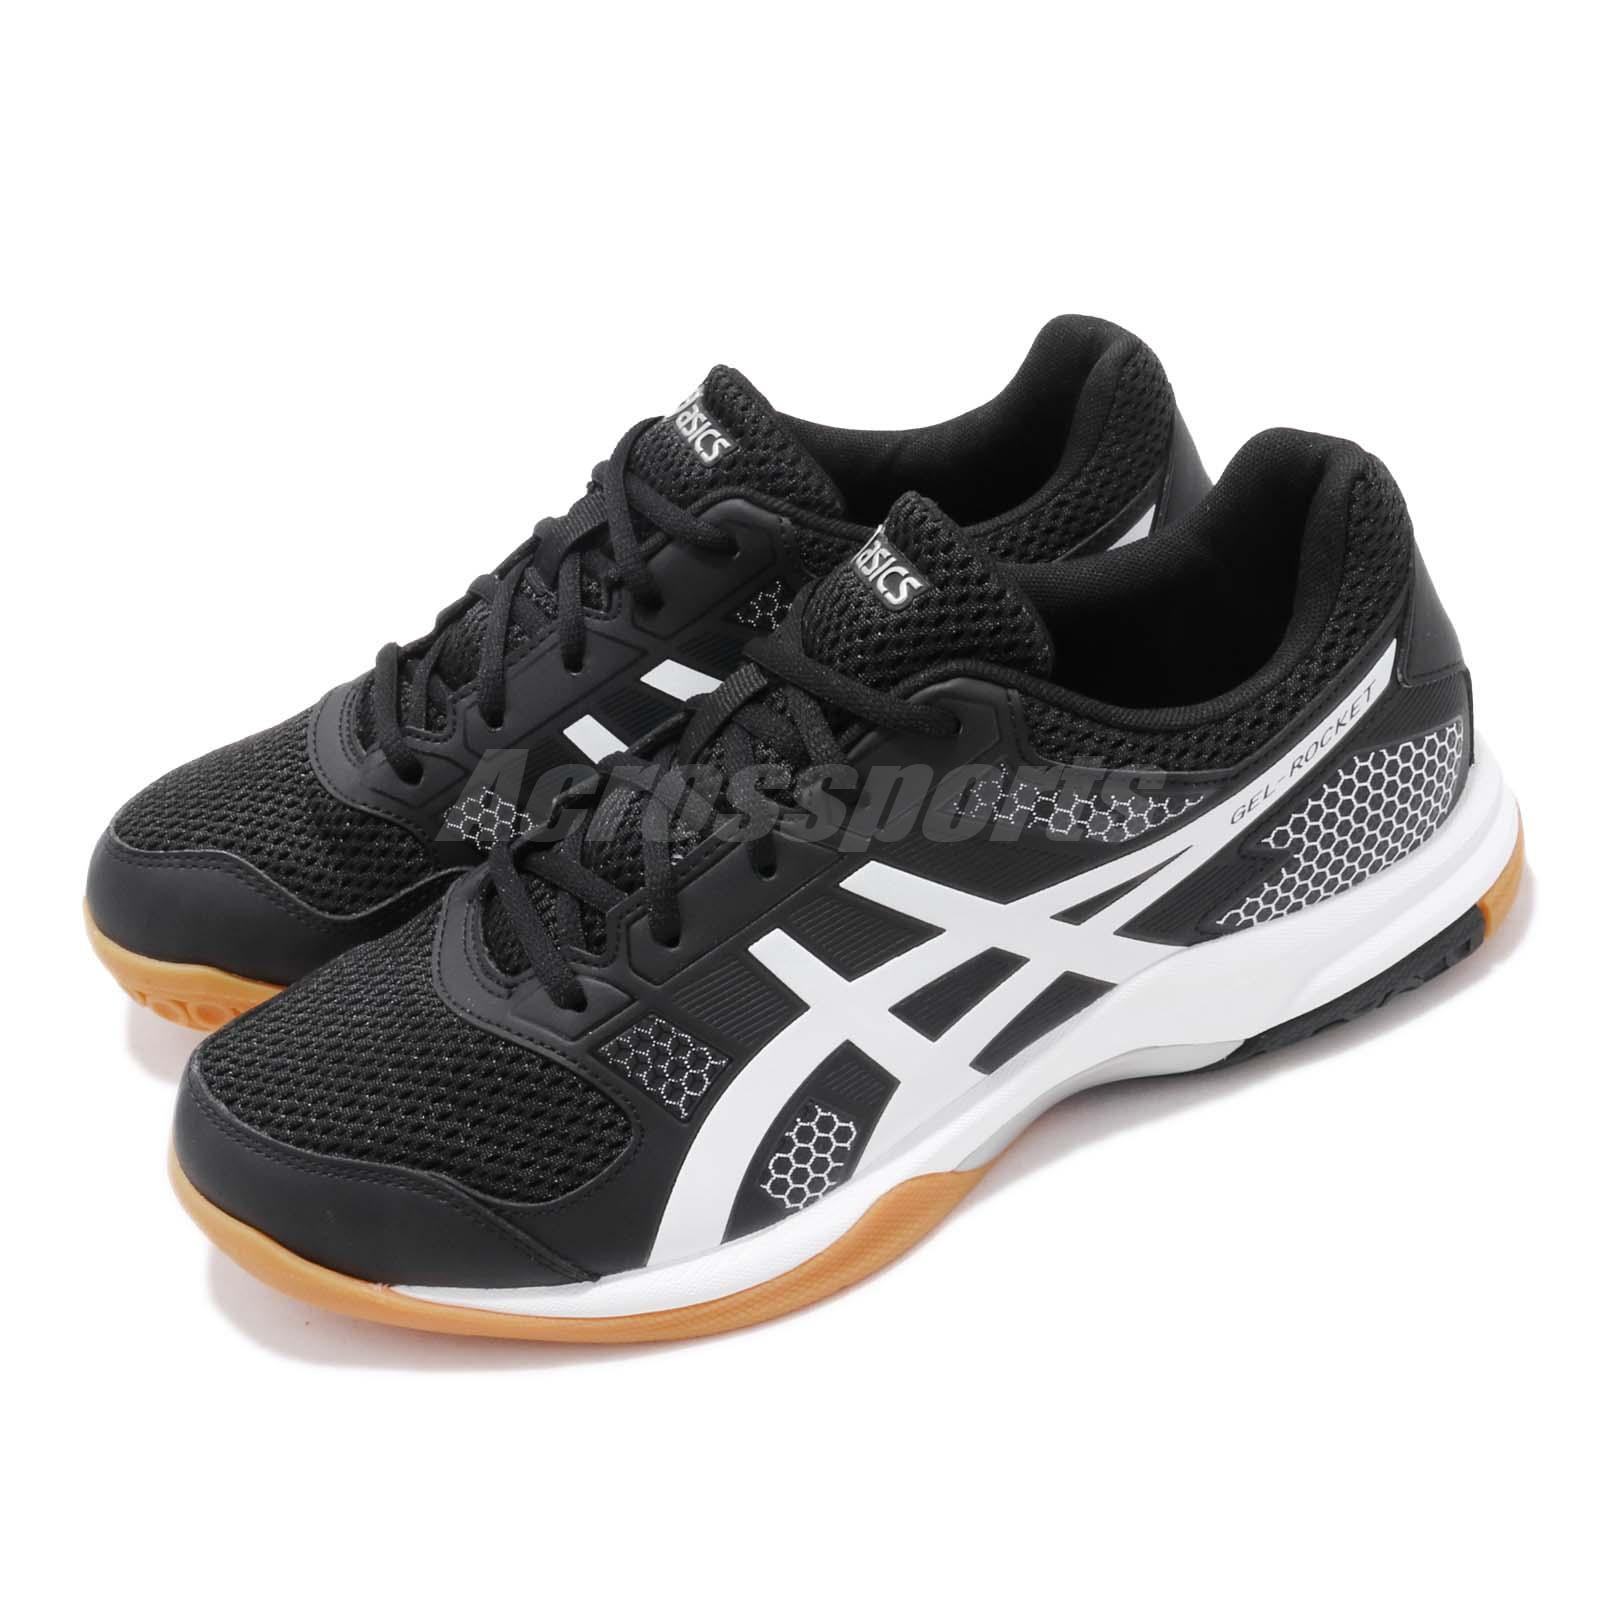 2d50f9cf4821 Details about Asics Gel-Rocket 8 Black White Gum Men Volleyball Badminton  Shoes B706Y-012